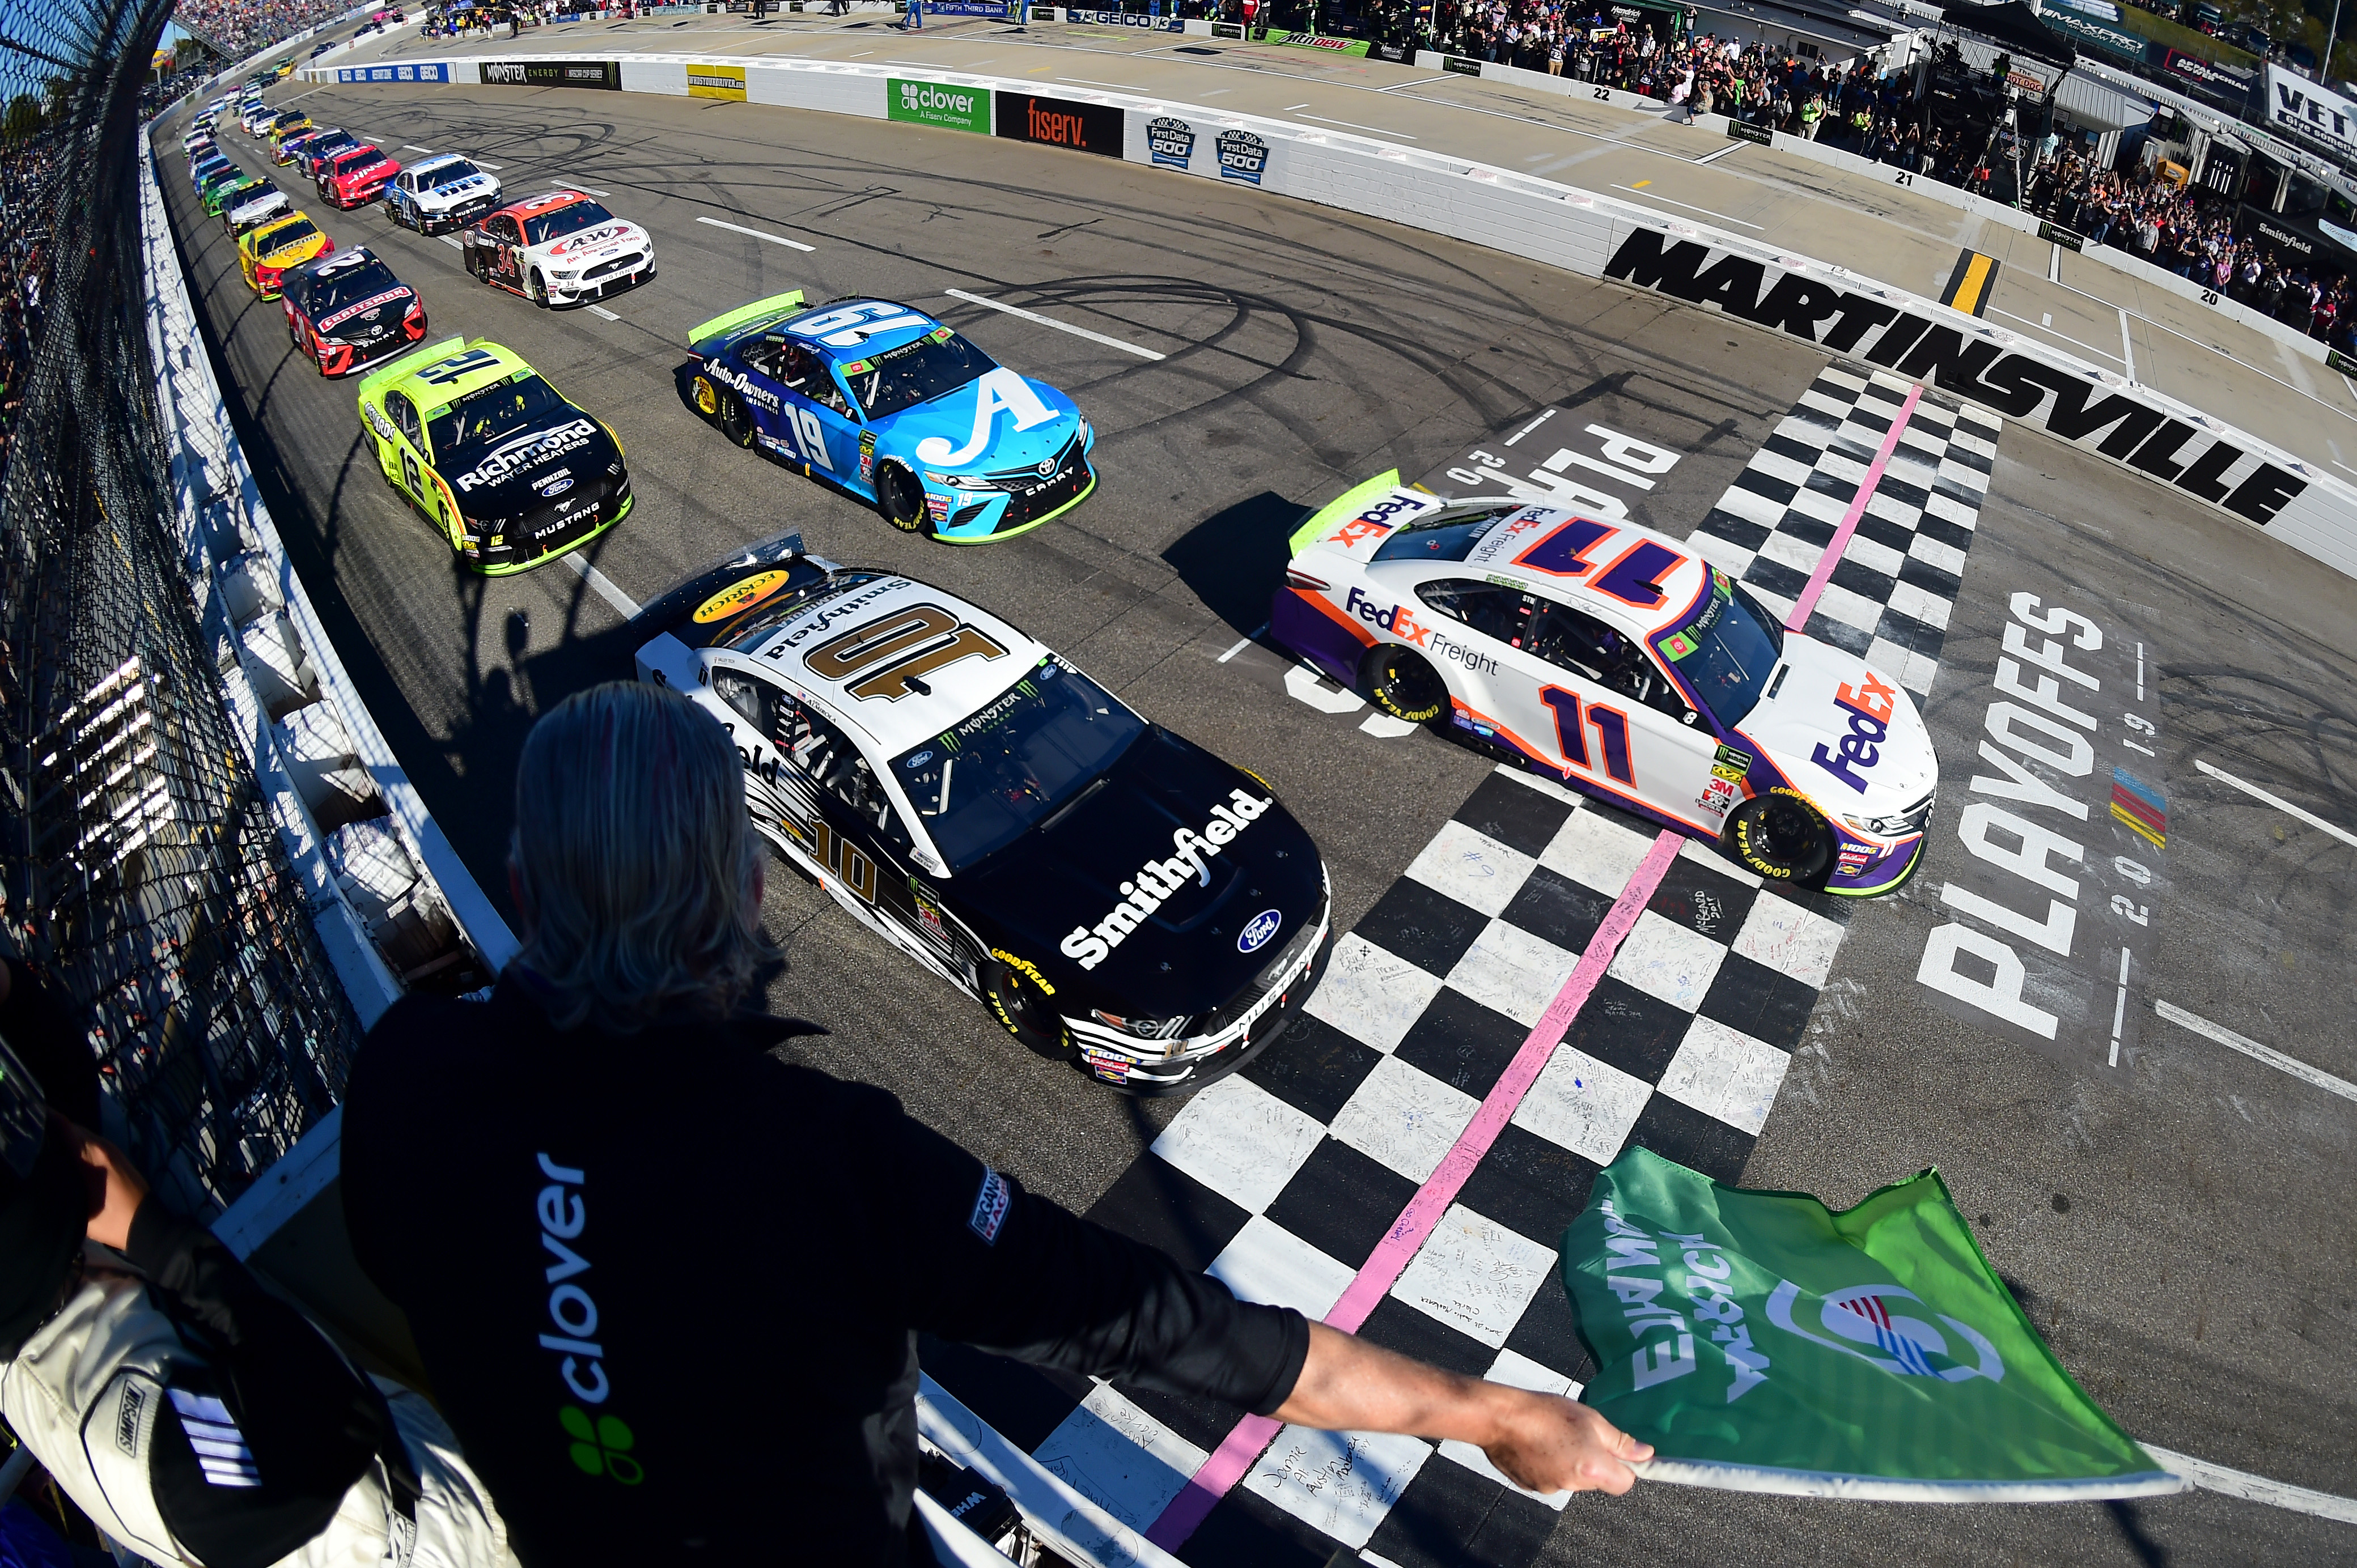 NASCAR's Planned Return To Racing At Risk